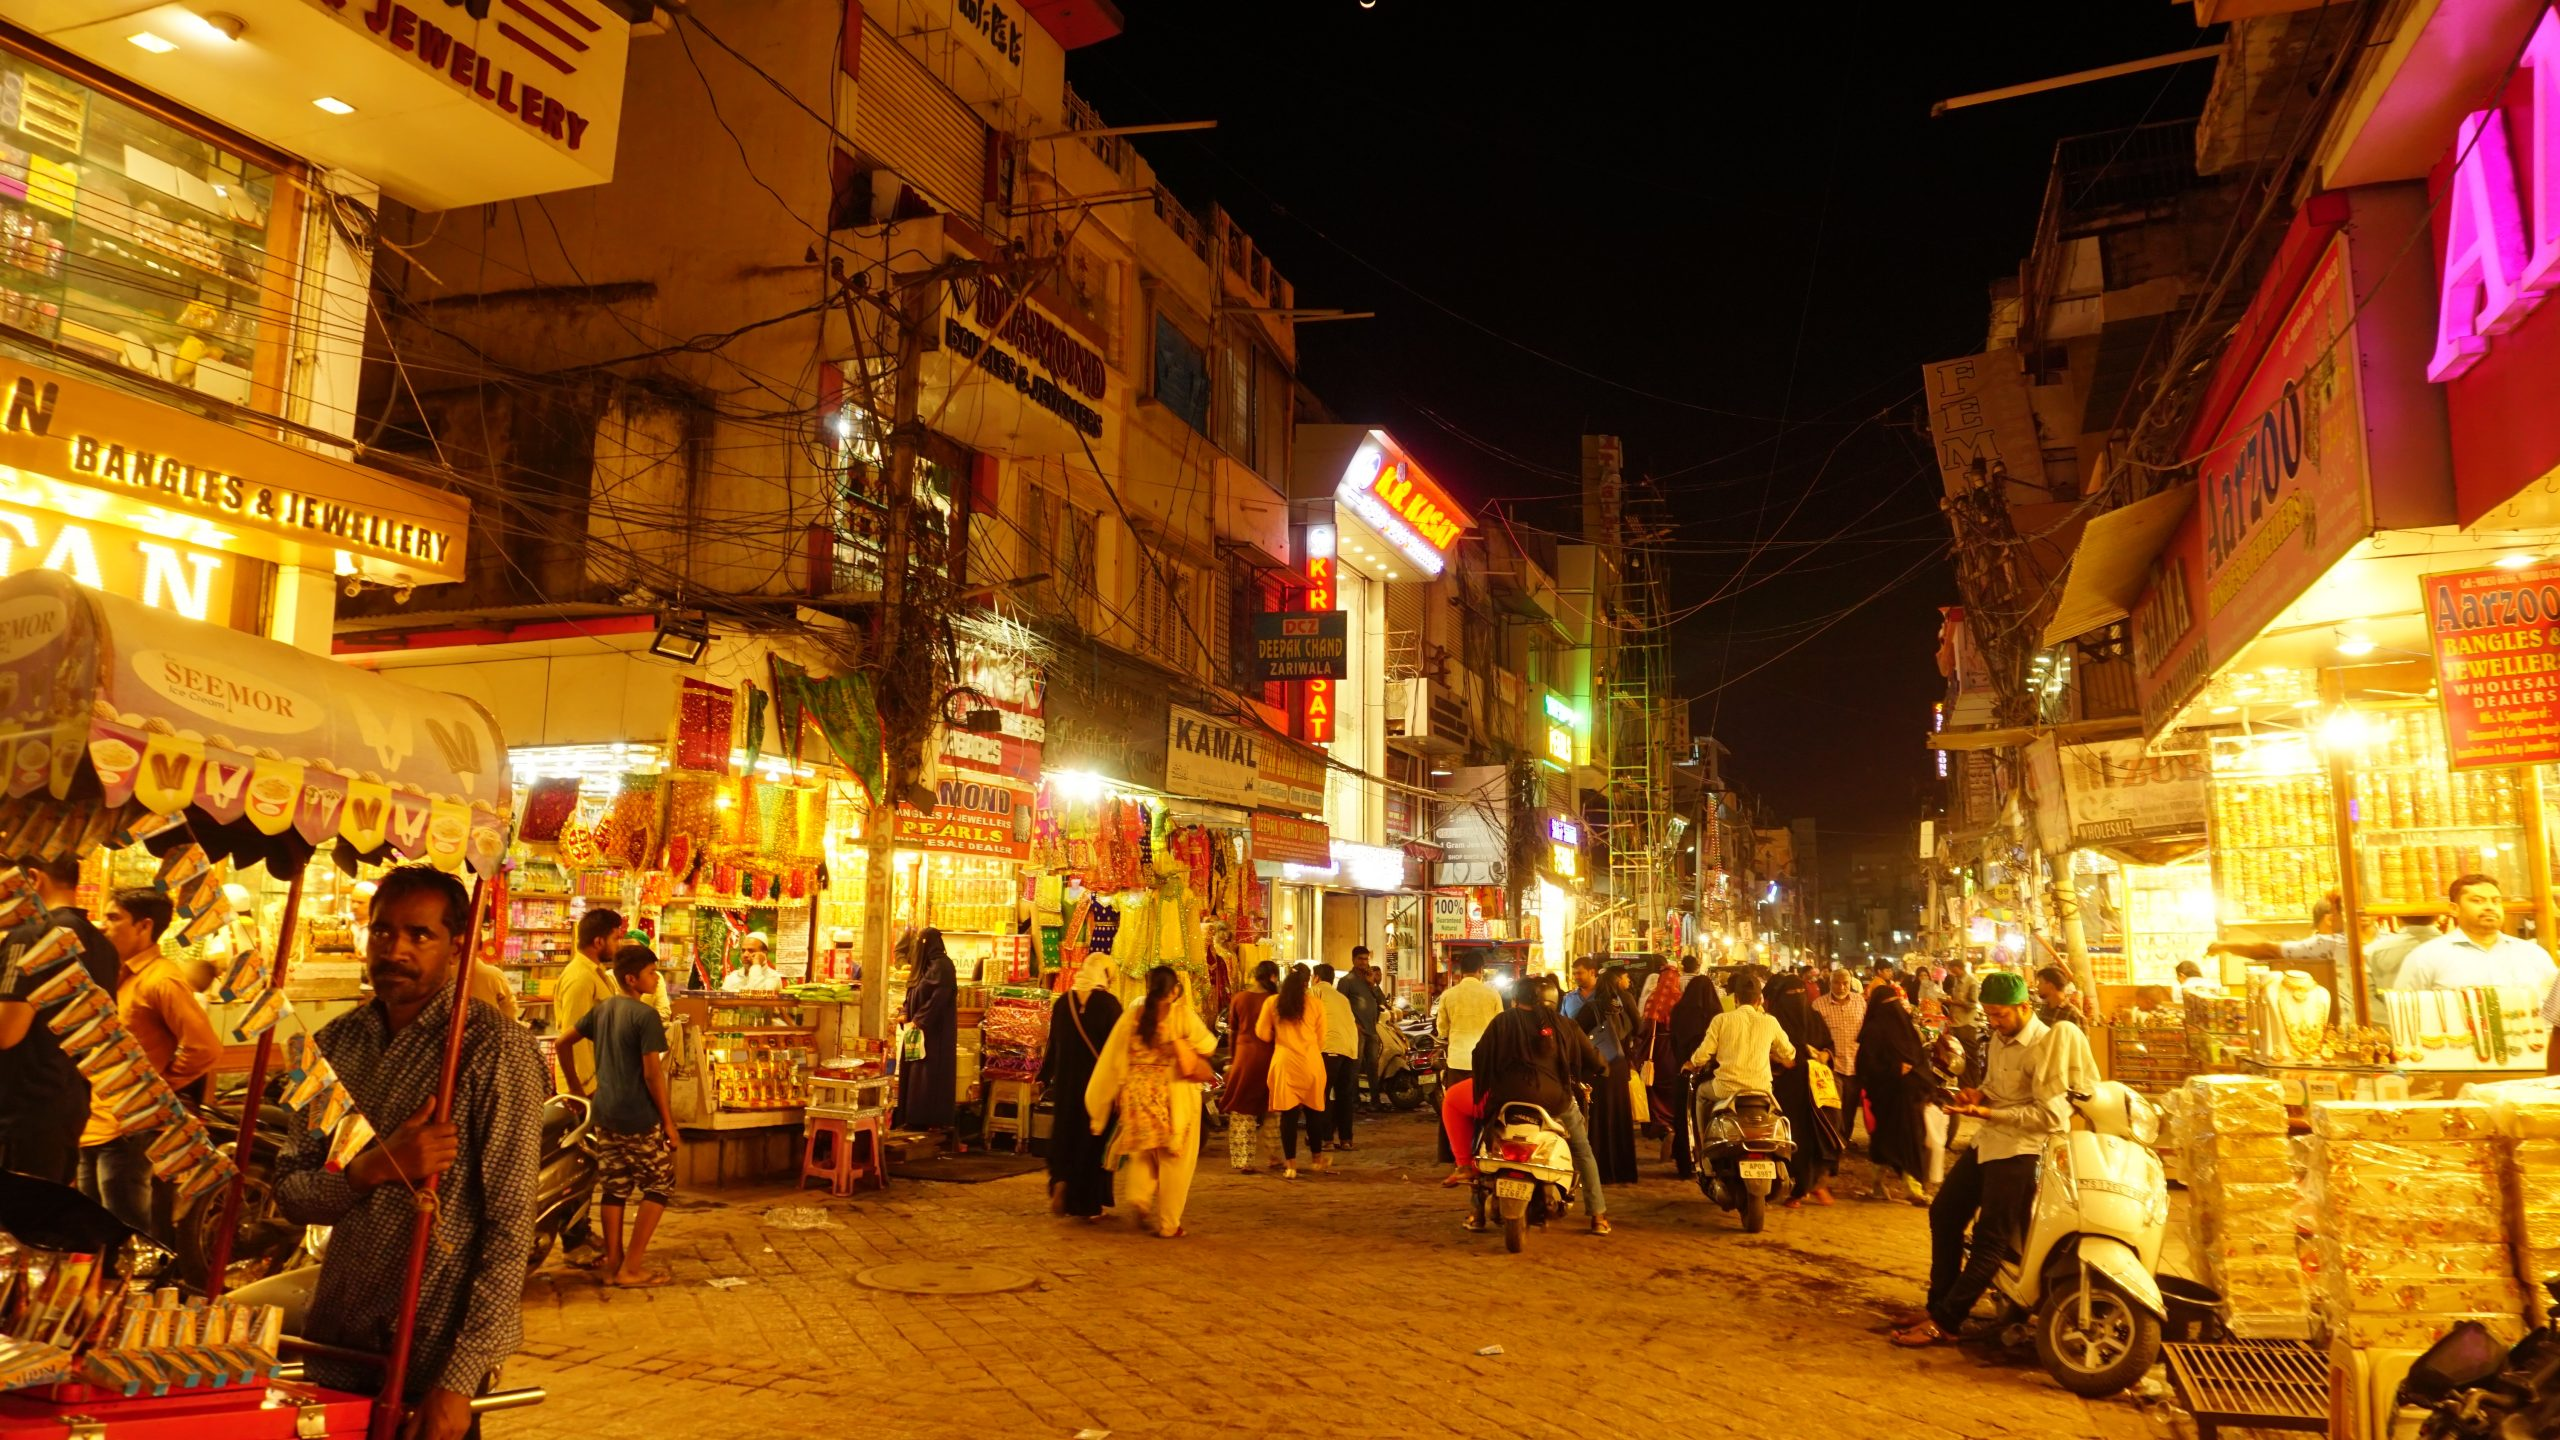 Laad Bazar in Hyderabad